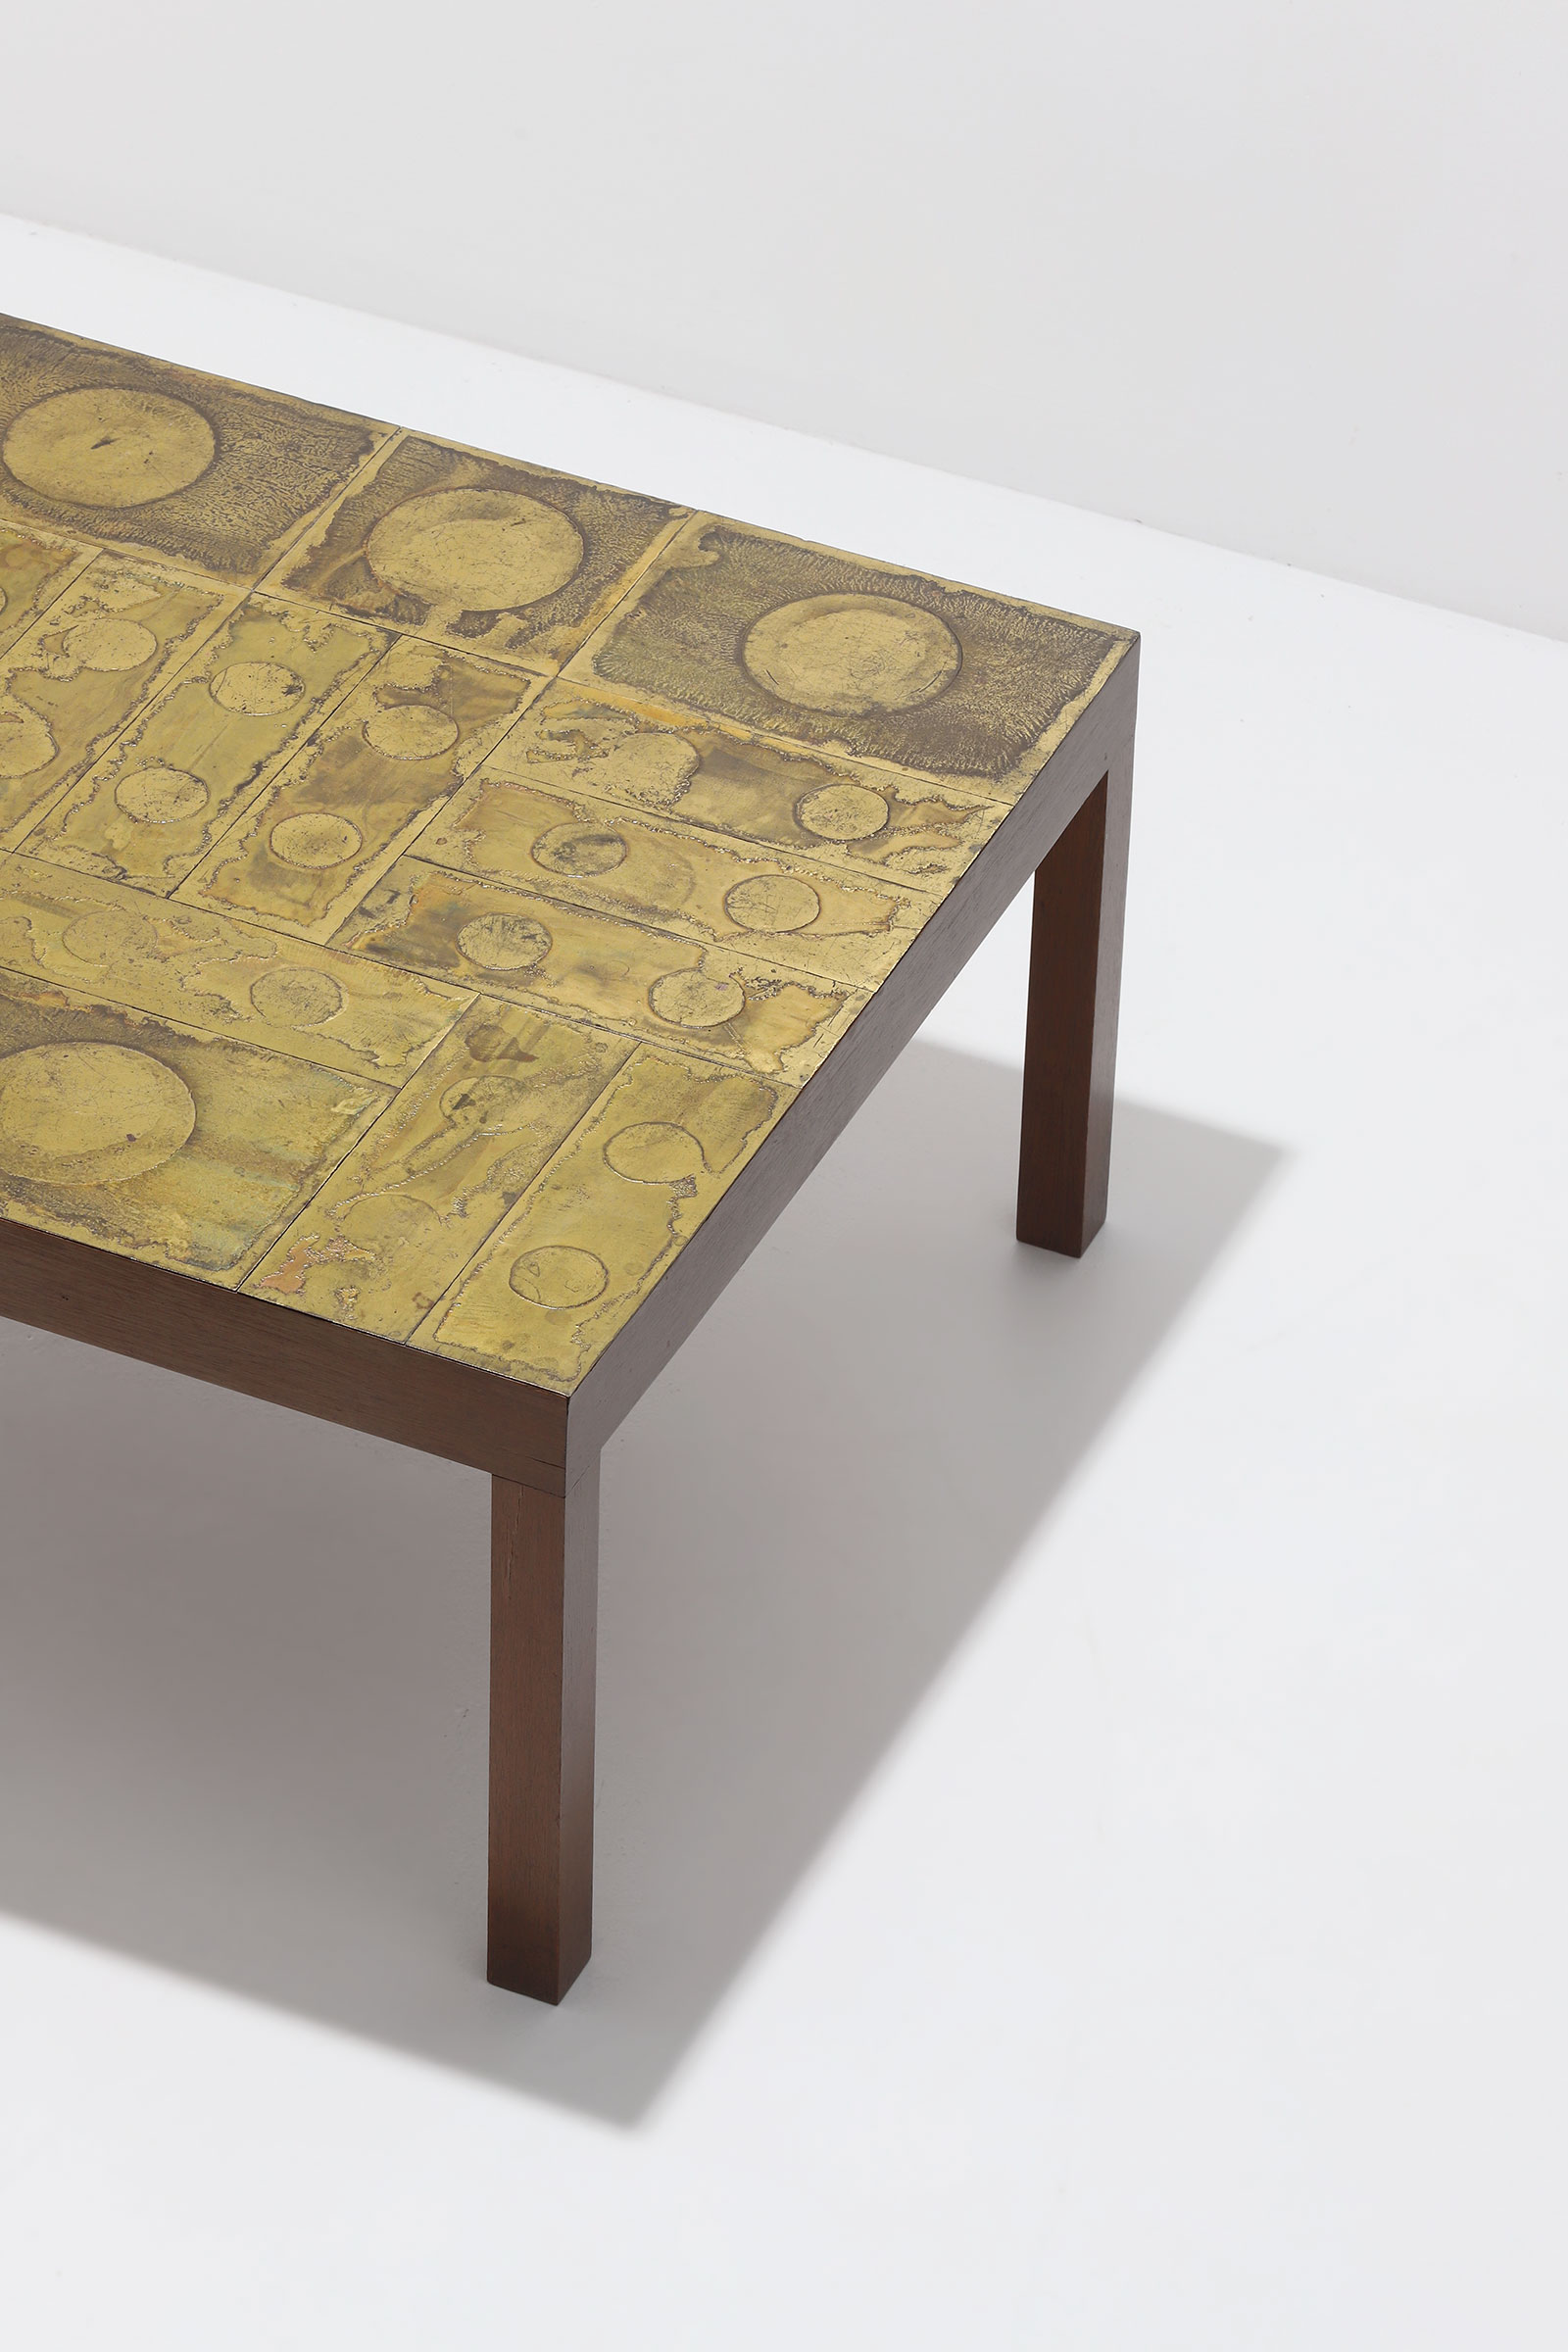 Willy Daro Brass etched Coffee Table 1970simage 4